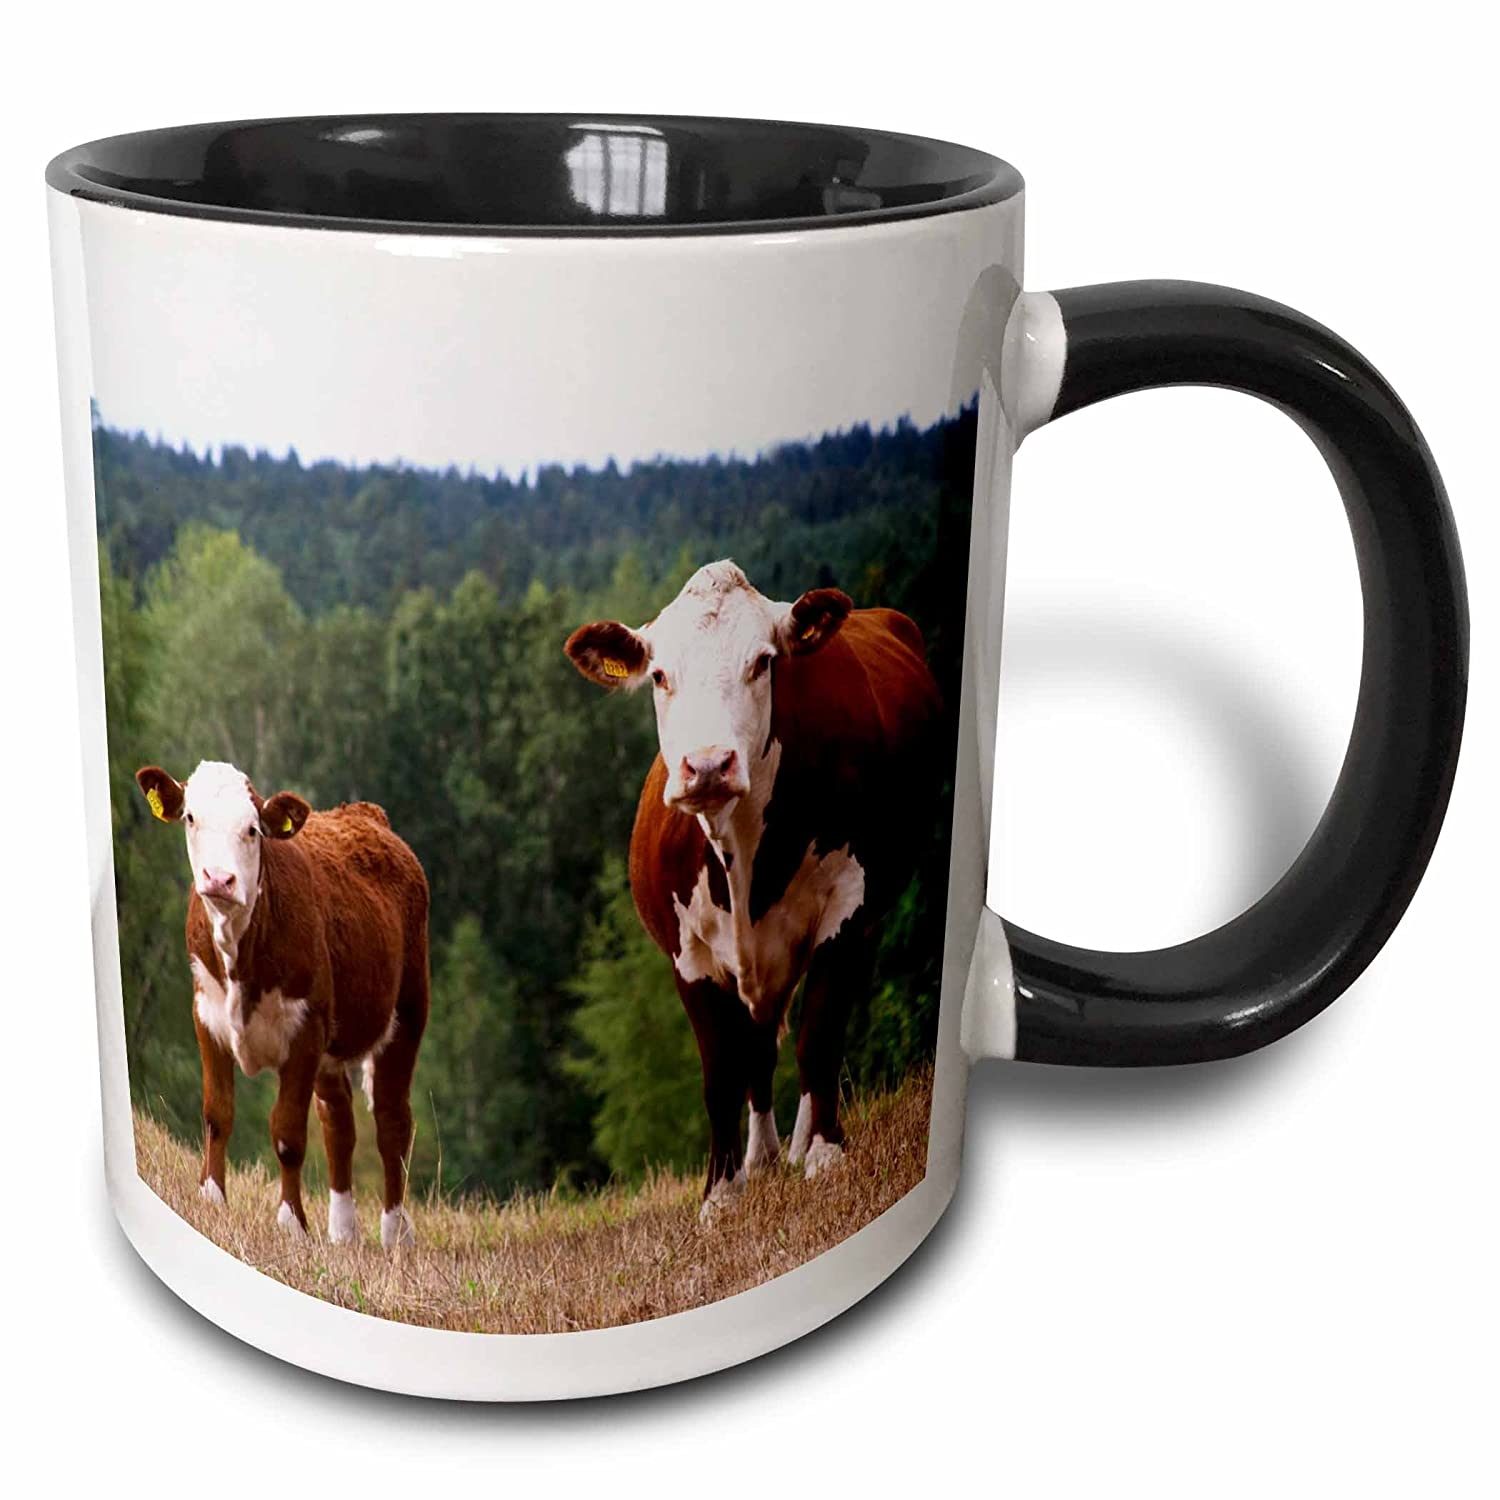 Per Karlsson Two Tone Black Mug 3dRose mug/_82607/_4Calf Cow Brown and white Smaland 11 oz Multicolor EU28 PKA0117 Sweden